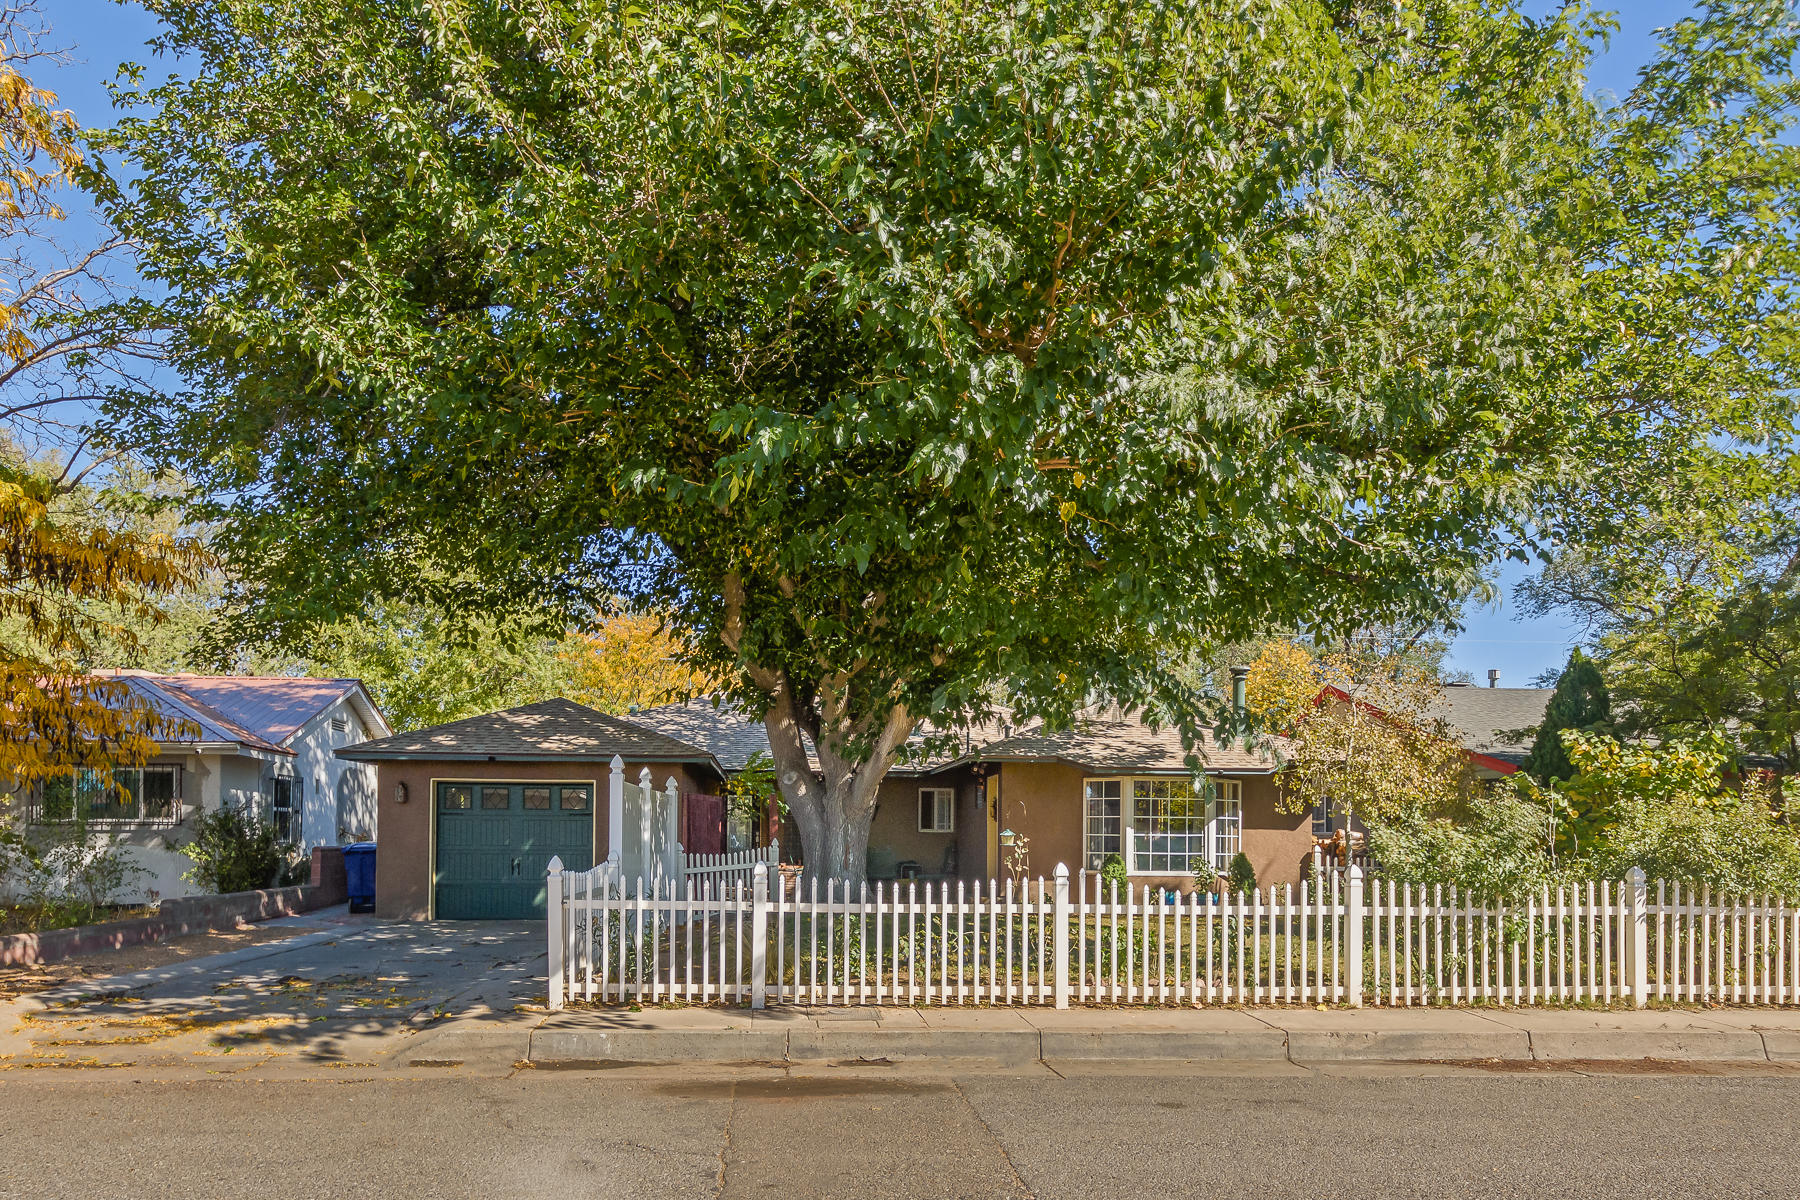 This Nob Hill gem is situated w/direct access to Hidden Park! Enjoy Mid-Century Modern living in this urban oasis with a backdrop of the Sandias. Located within minutes of UNM, Nob Hill, shopping and I-40. The inviting open-concept living & dining area with vaulted TNG pine ceilngs, wood-burning fireplace and large picture frame windows will be sure to satisfy any homeowner's desires. Recently remodeled kitchen with Knotty Alder cabinets, S/S appliances and granite tops. Oak flooring adorns the kichen, dining and other areas. The main owner's suite boasts brick floors, a patio, an attached nursery or office, and an adobe trombe wall. The 2nd master bedroom is nicely sized and has a private entrance, suitable for in-laws or guests. All of this and more inluding a full home inspection